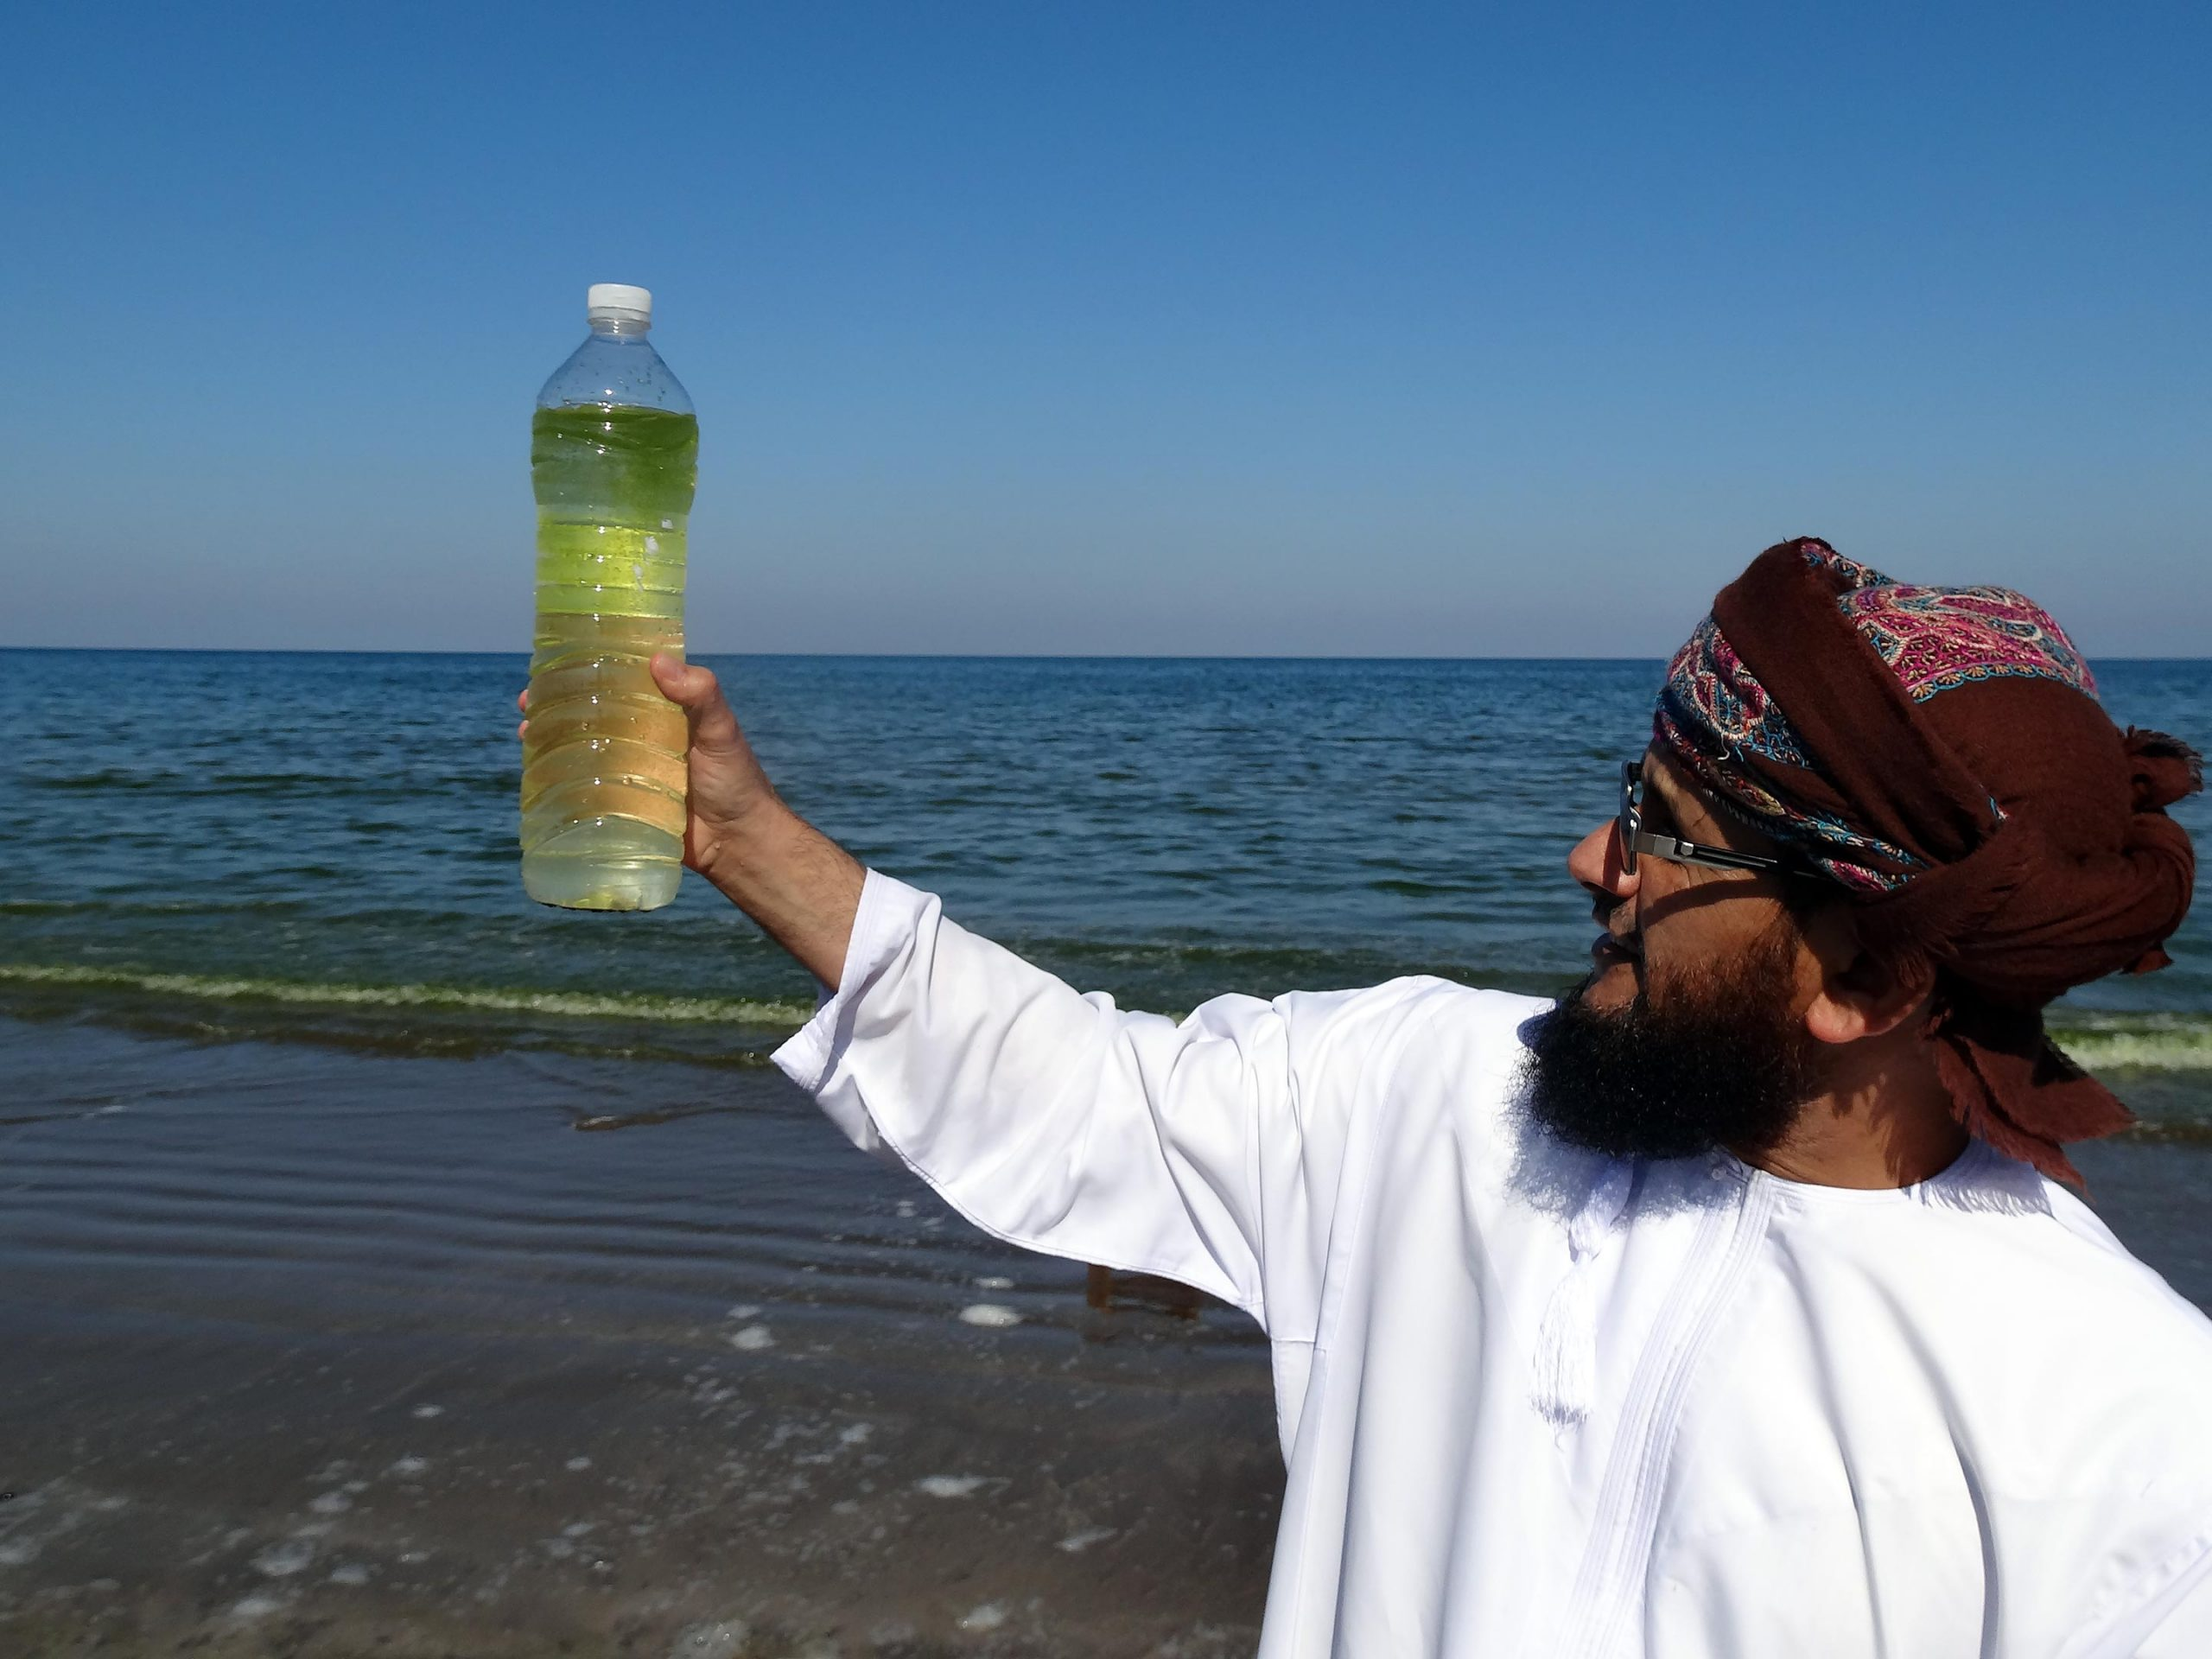 Harmful Algal Blooms In Arabian Sea Fueled By Shrinking Snowcaps